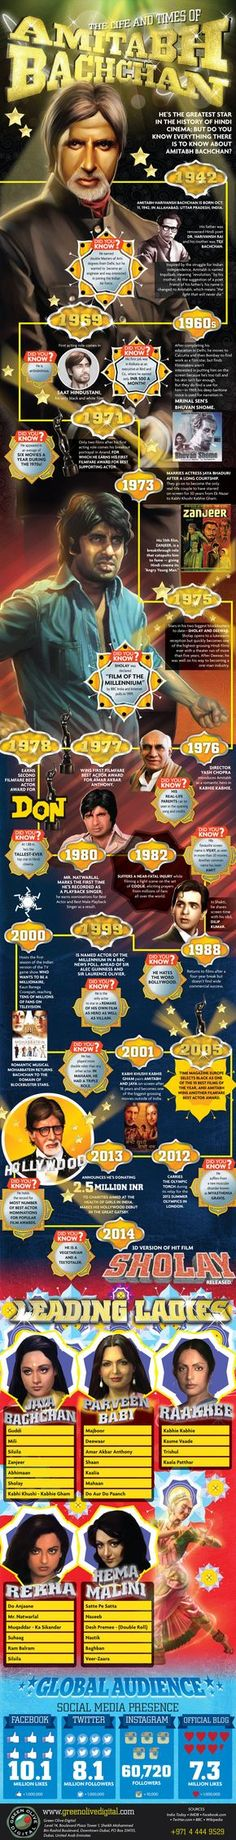 Today's infographic features Amitabh Bachchan, an Indian legend in the world of Bollywood. While I've never actually seen a Bollywood production, I was fortunate enough to have the opportunity to visit the entrancing, and multifaceted country of Indi